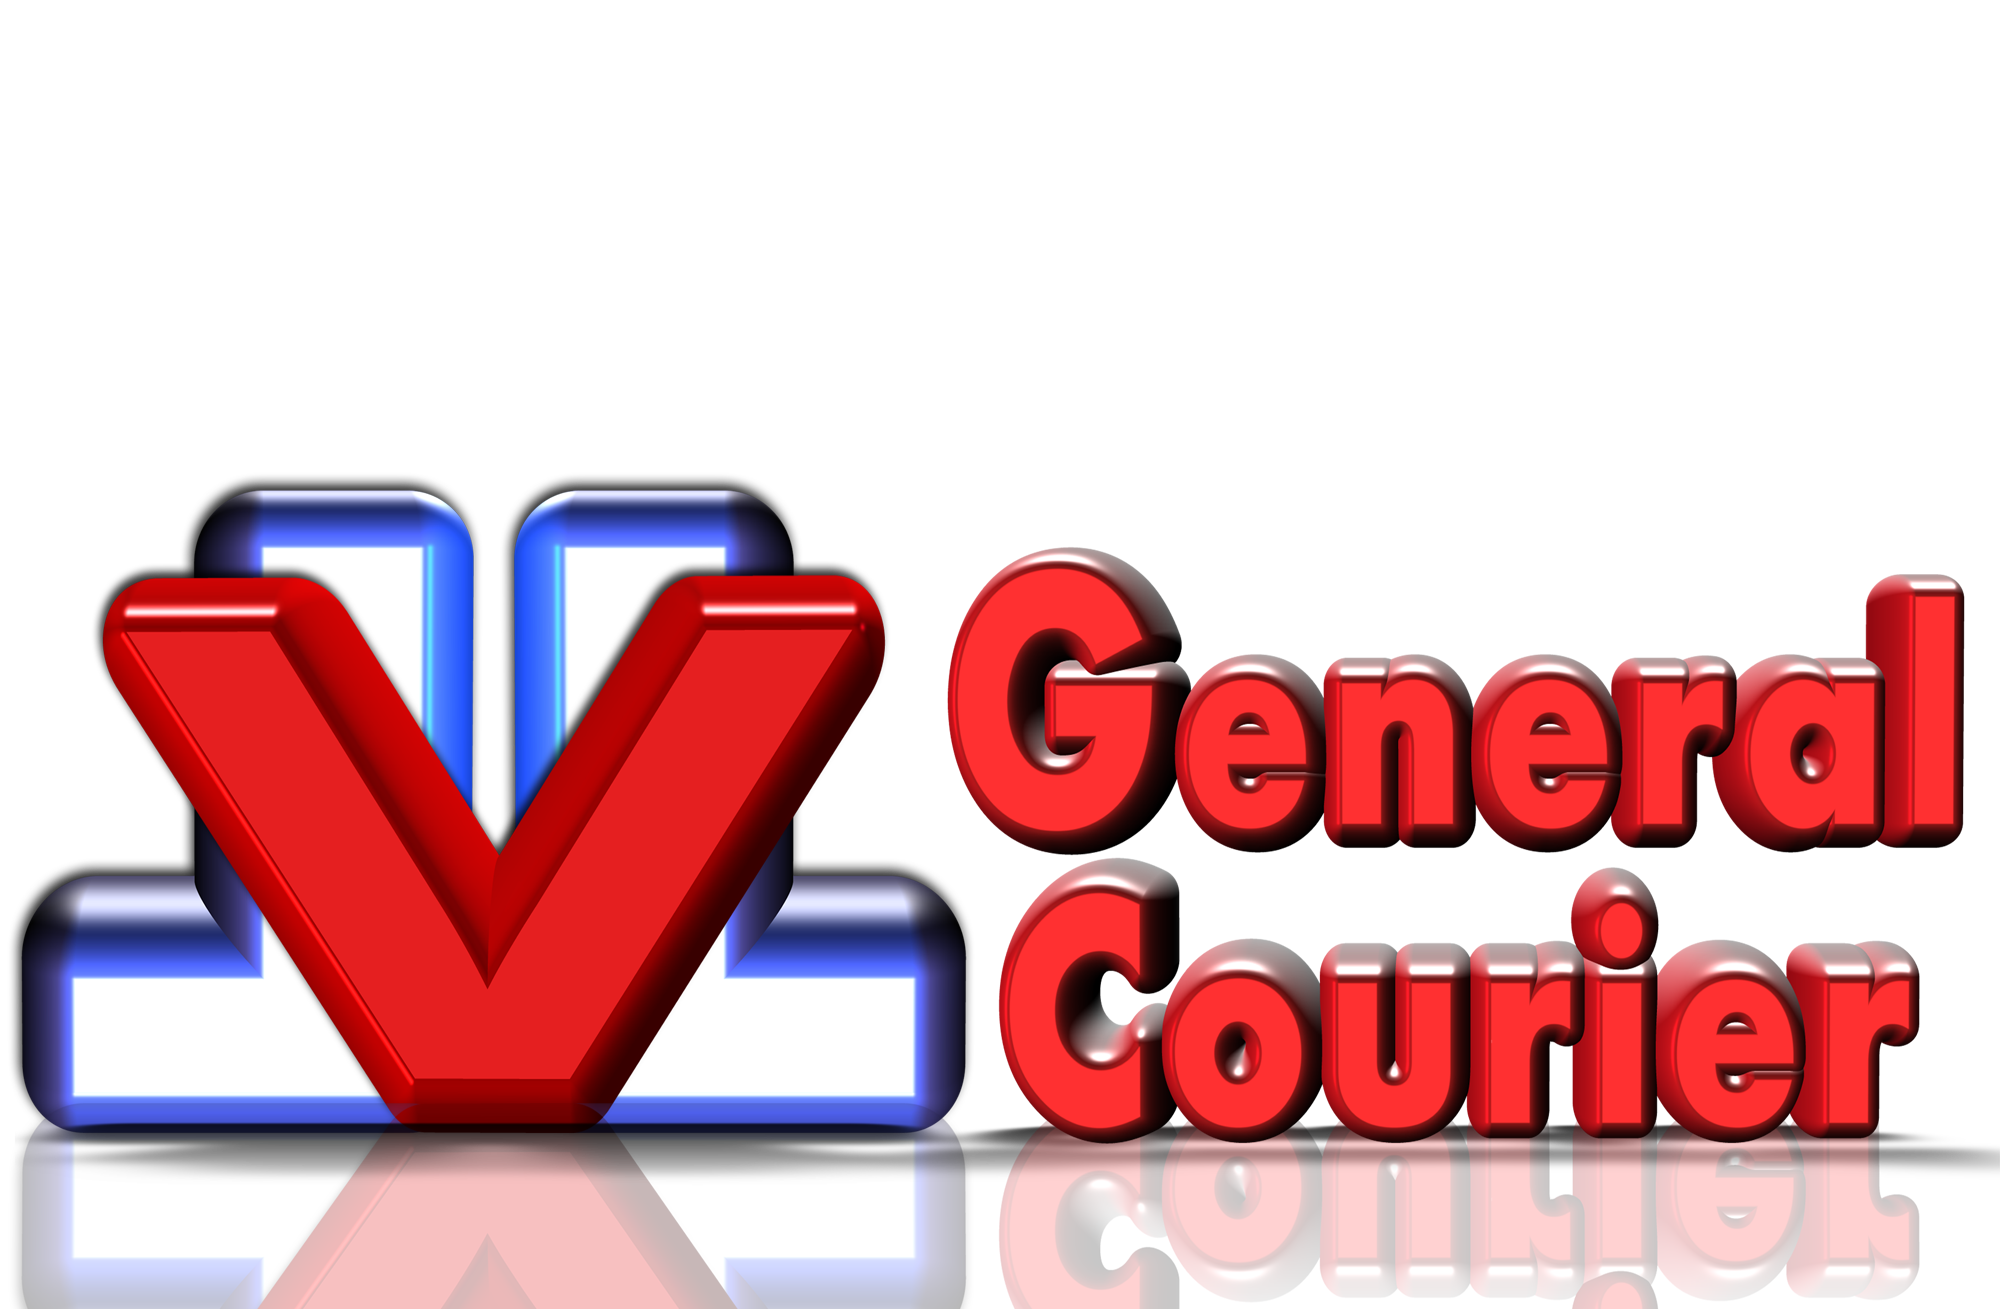 General Courier